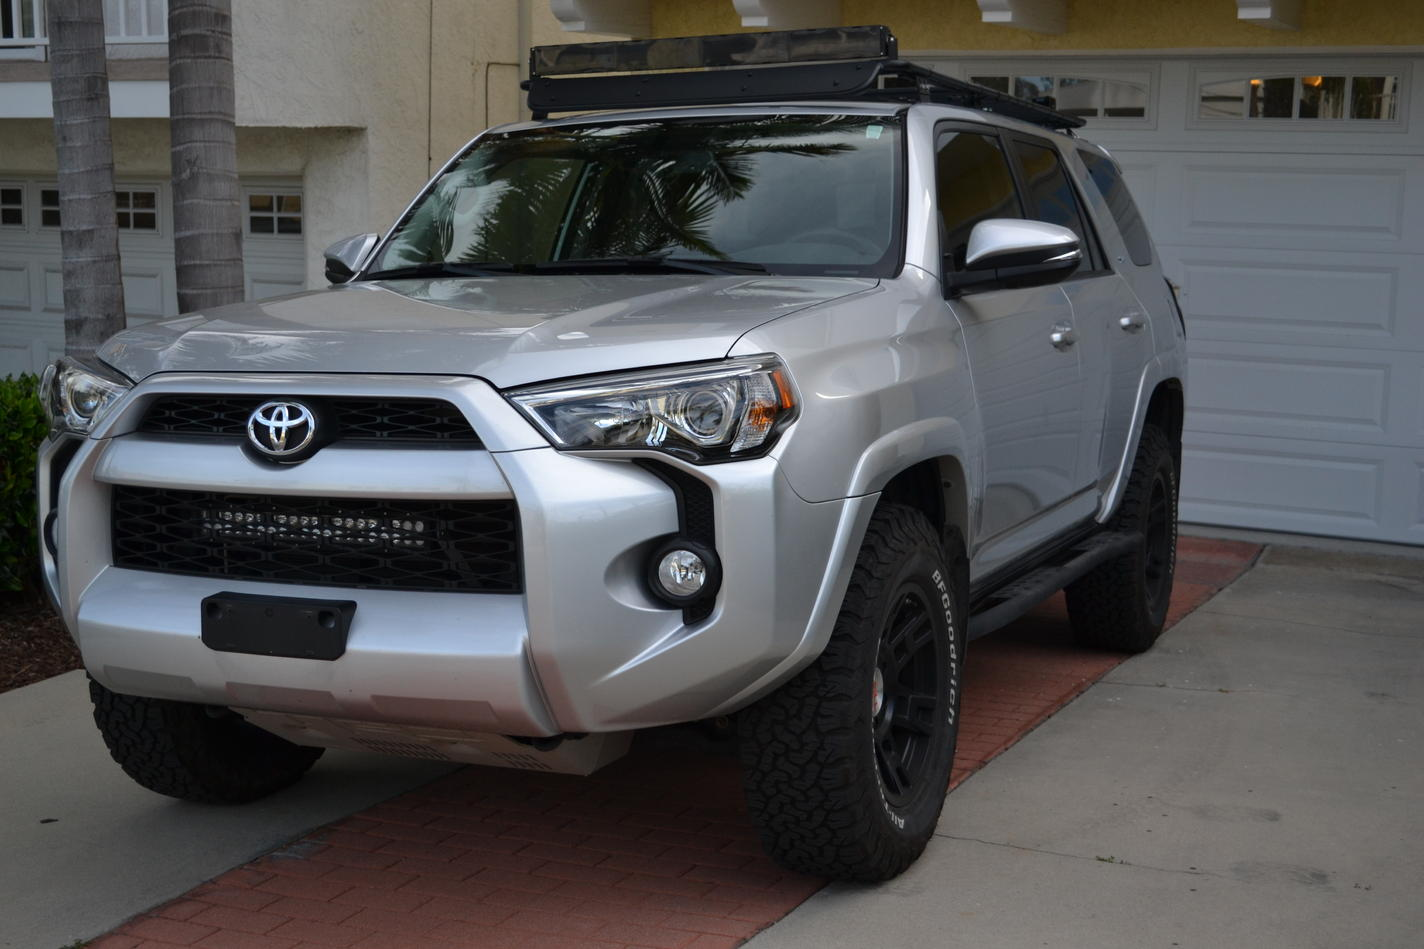 wild_turkey 2015 t4r sr5 premium build - page 4 - toyota 4runner